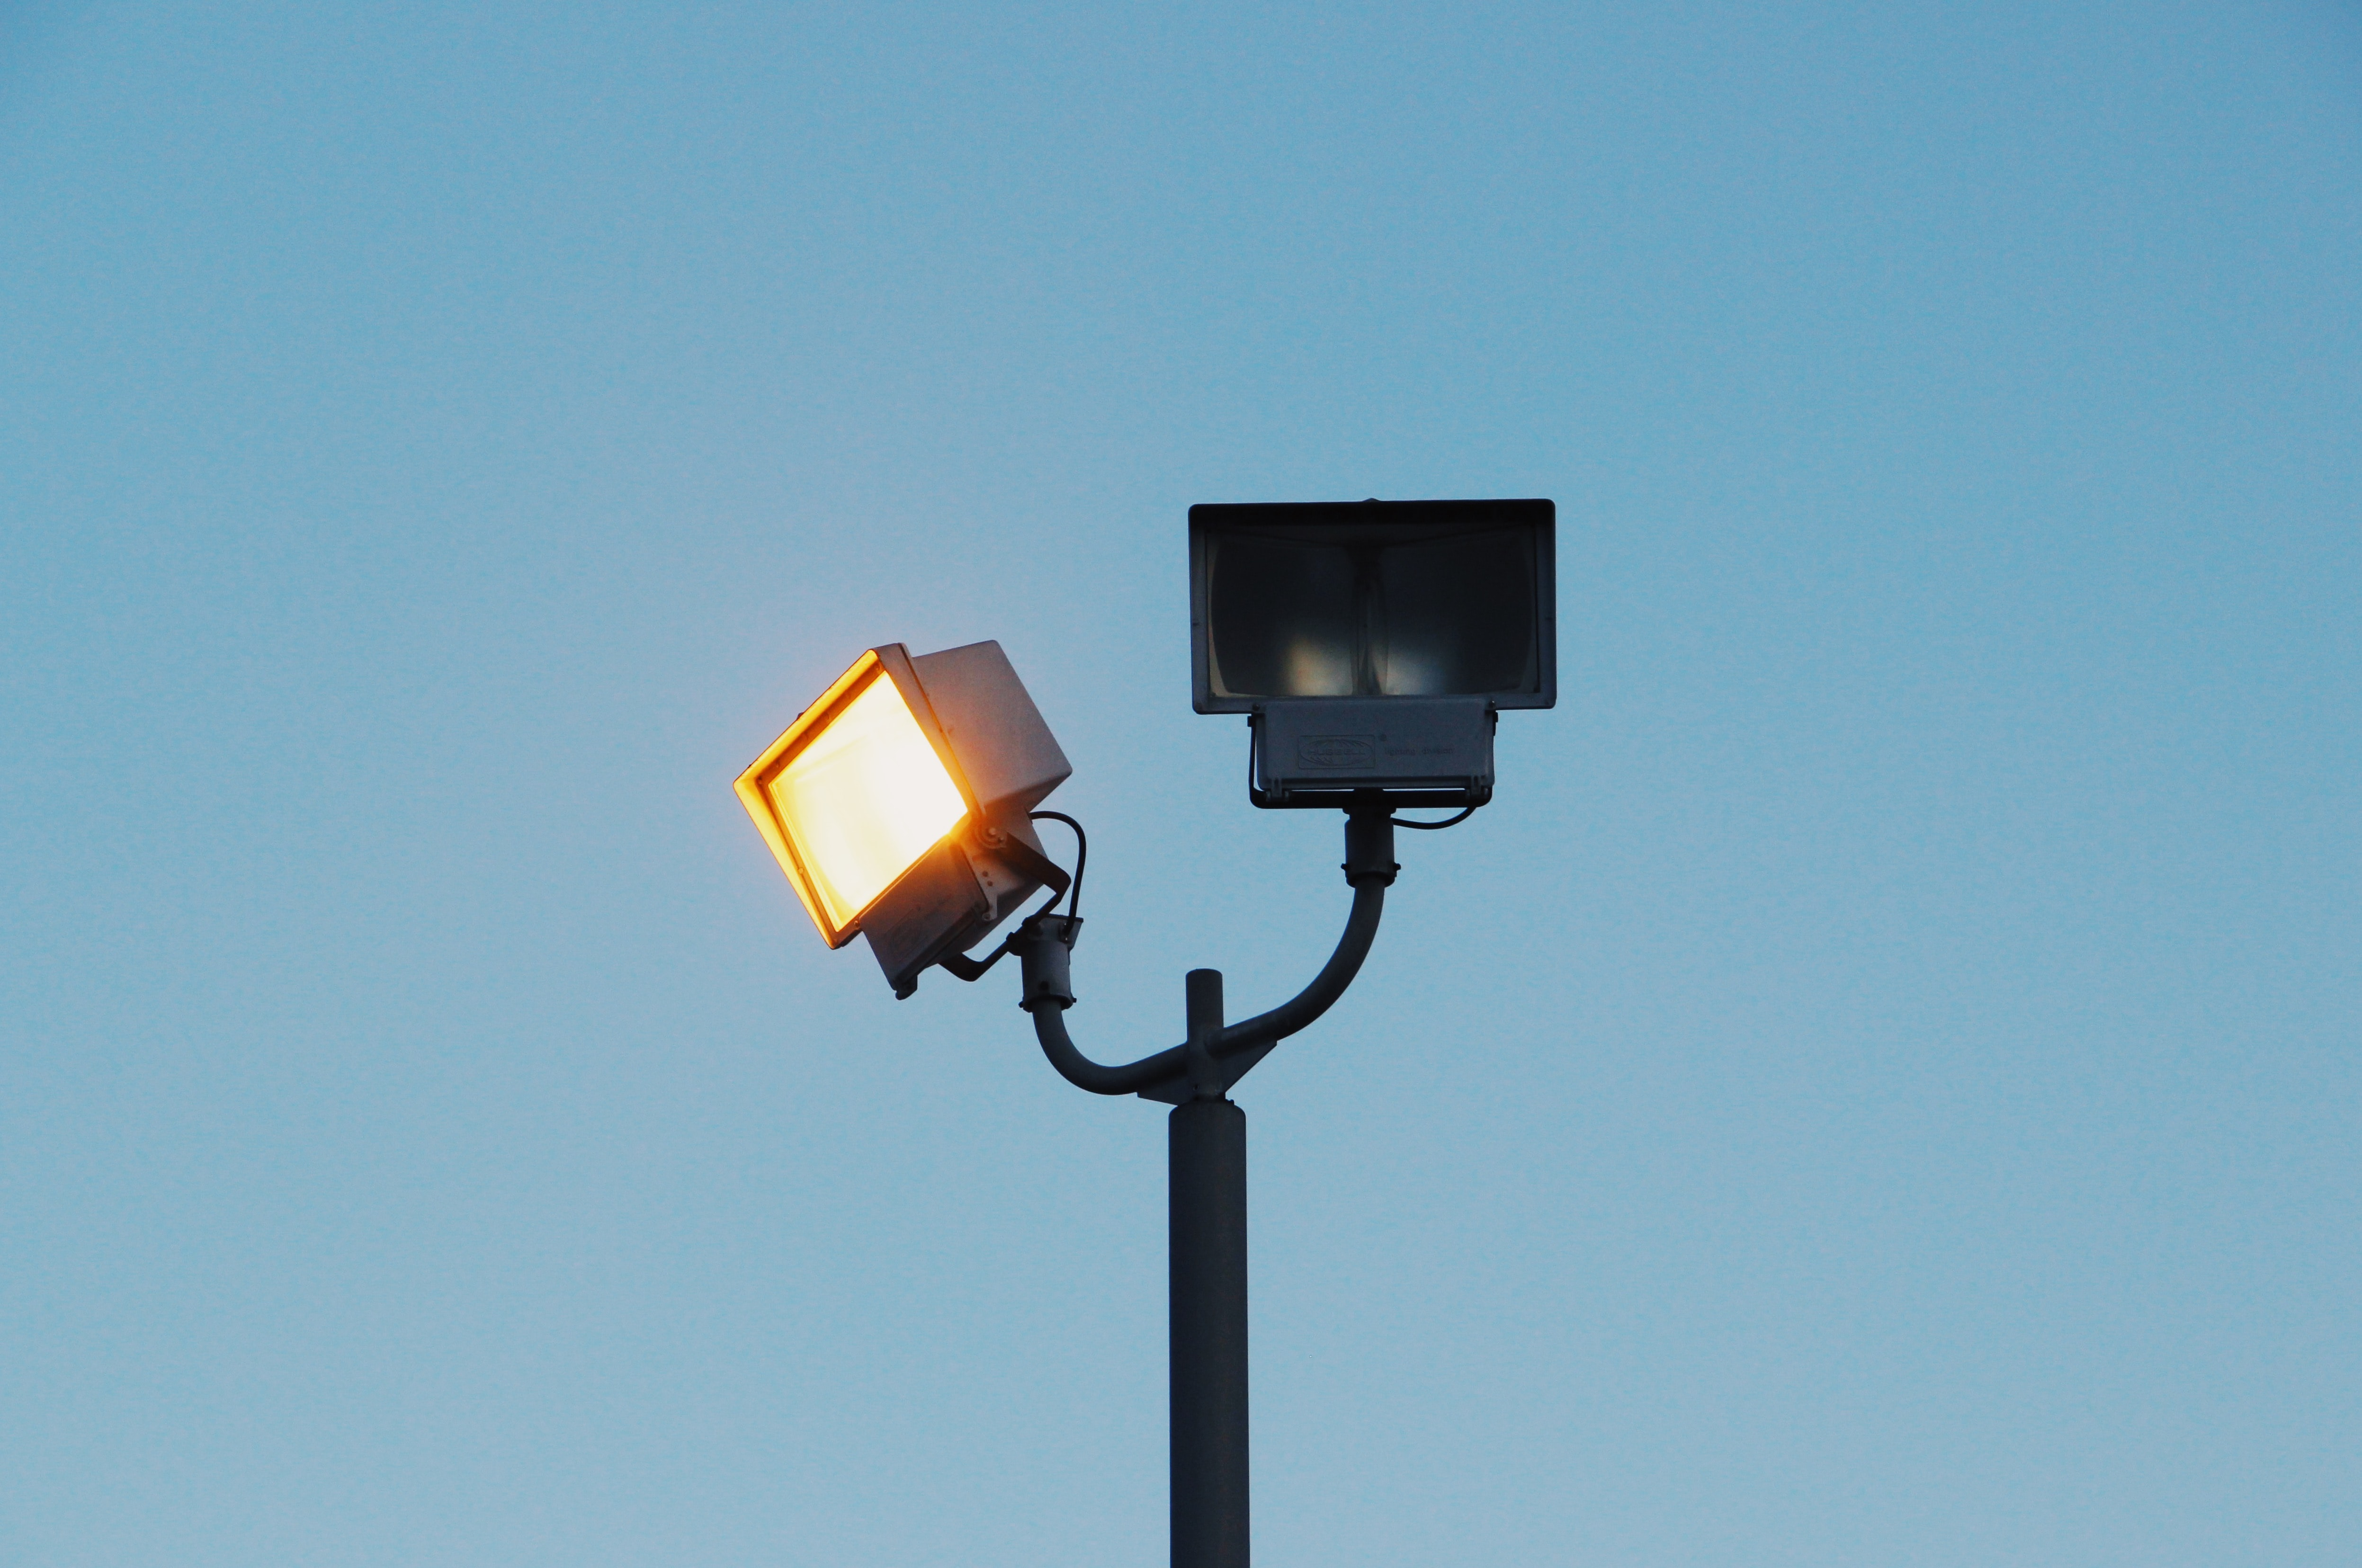 A rectangular spot light on a post next to another unlit lamp